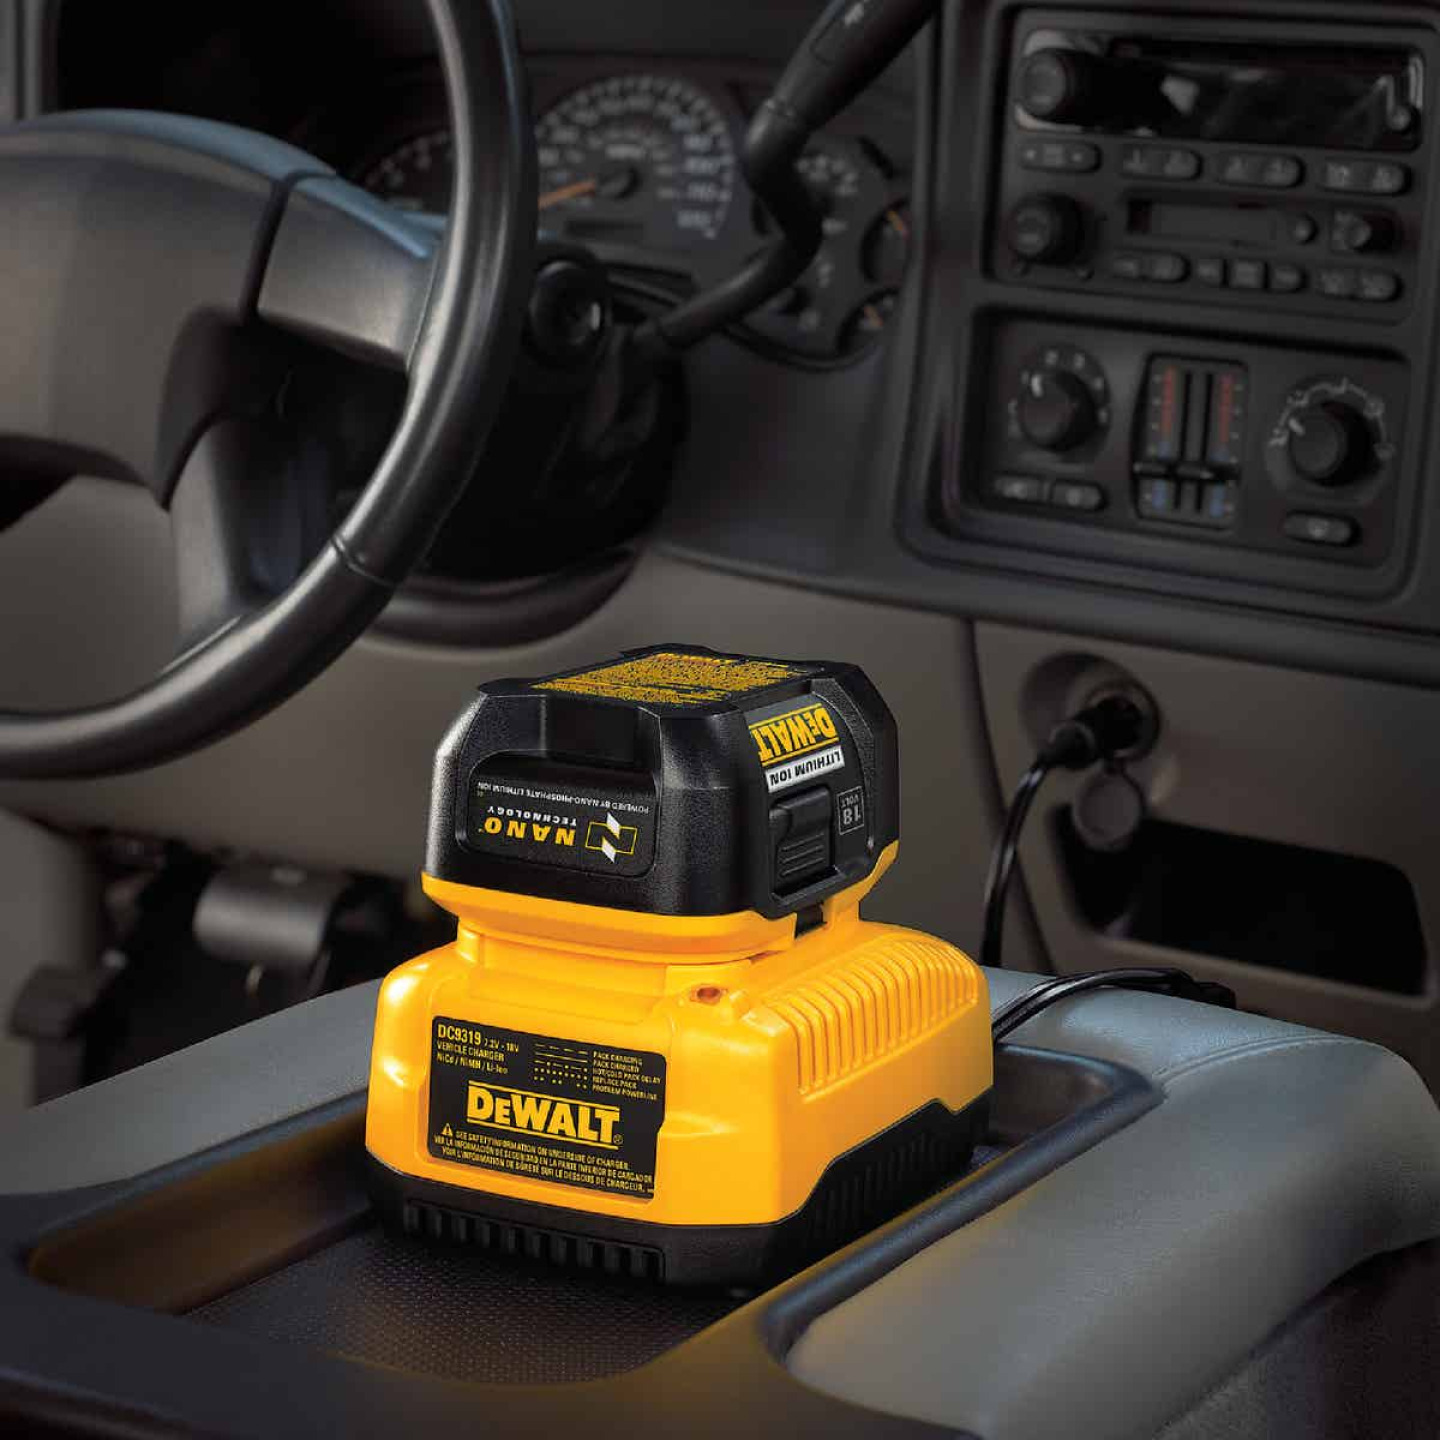 DeWalt 7.2-Volt to 18-Volt Nickel-Cadmium/Nickel-Metal Hydride/Lithium-Ion Vehicle Battery Charger Image 2